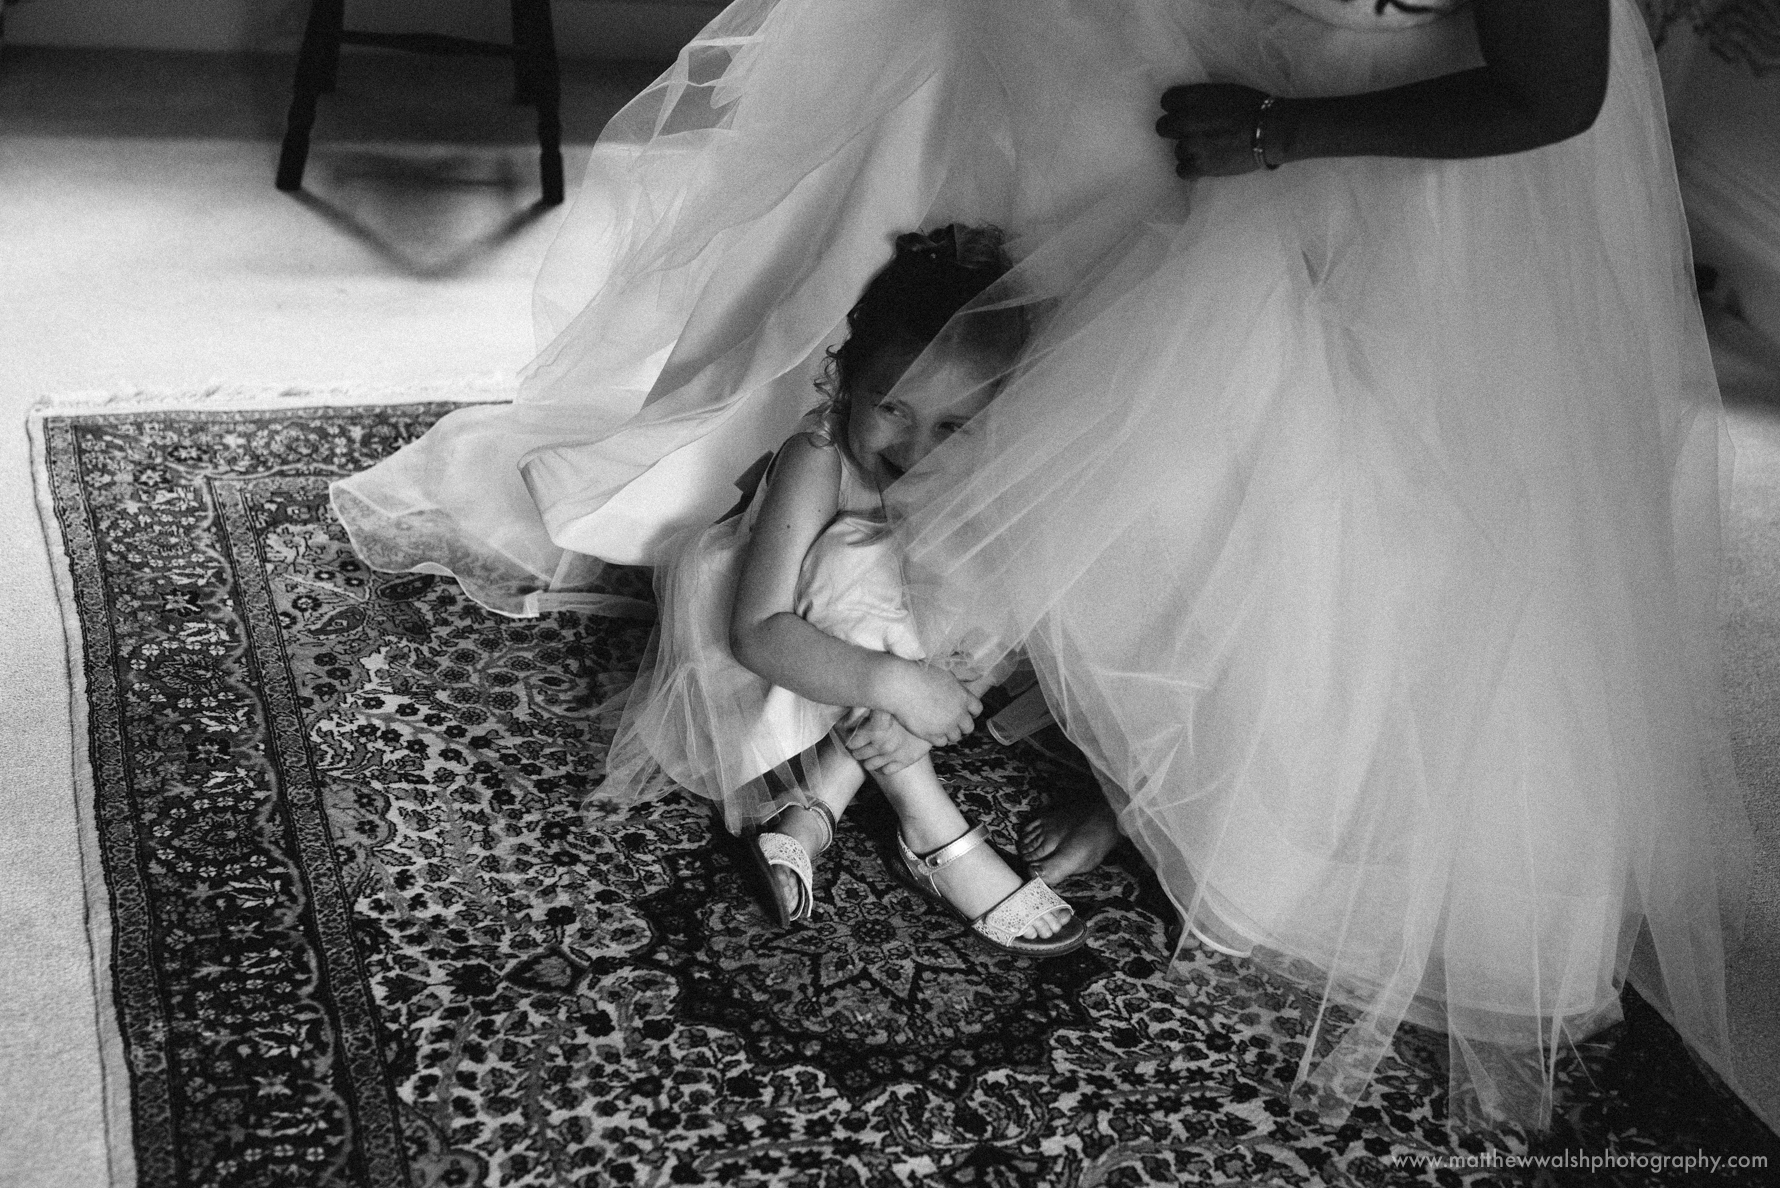 Observed moment of the Flower girl hiding under the wedding dress